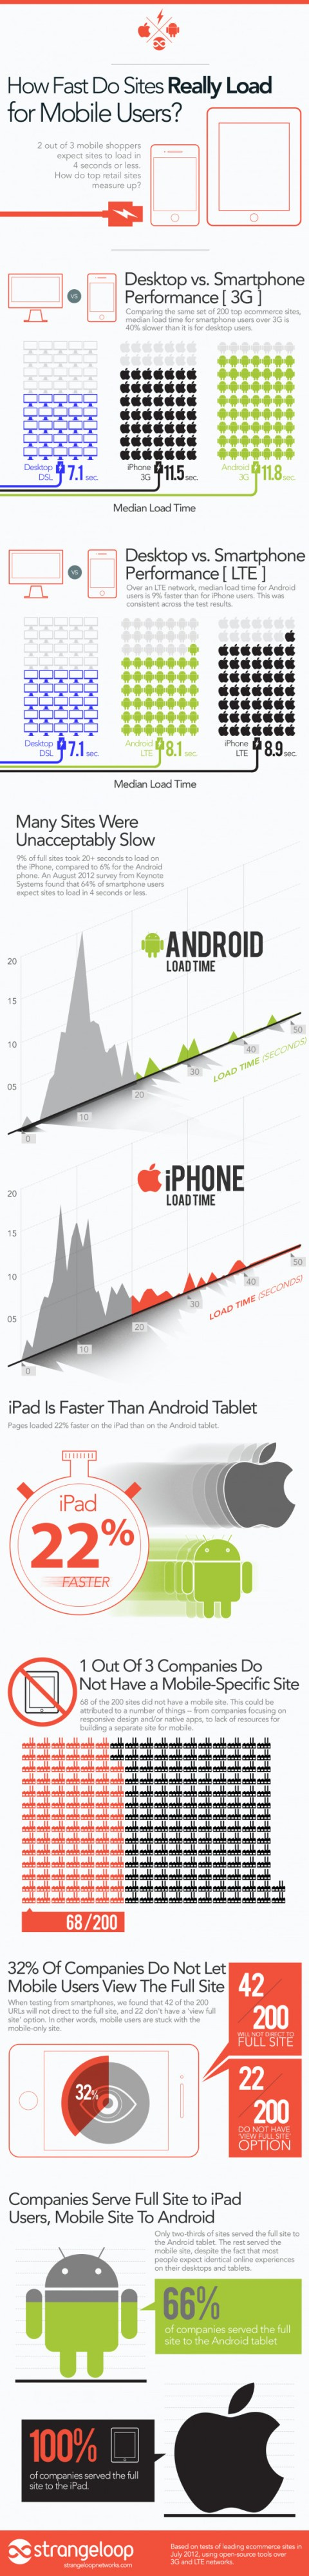 How Fast Do Websites Really Load for Mobile Users?